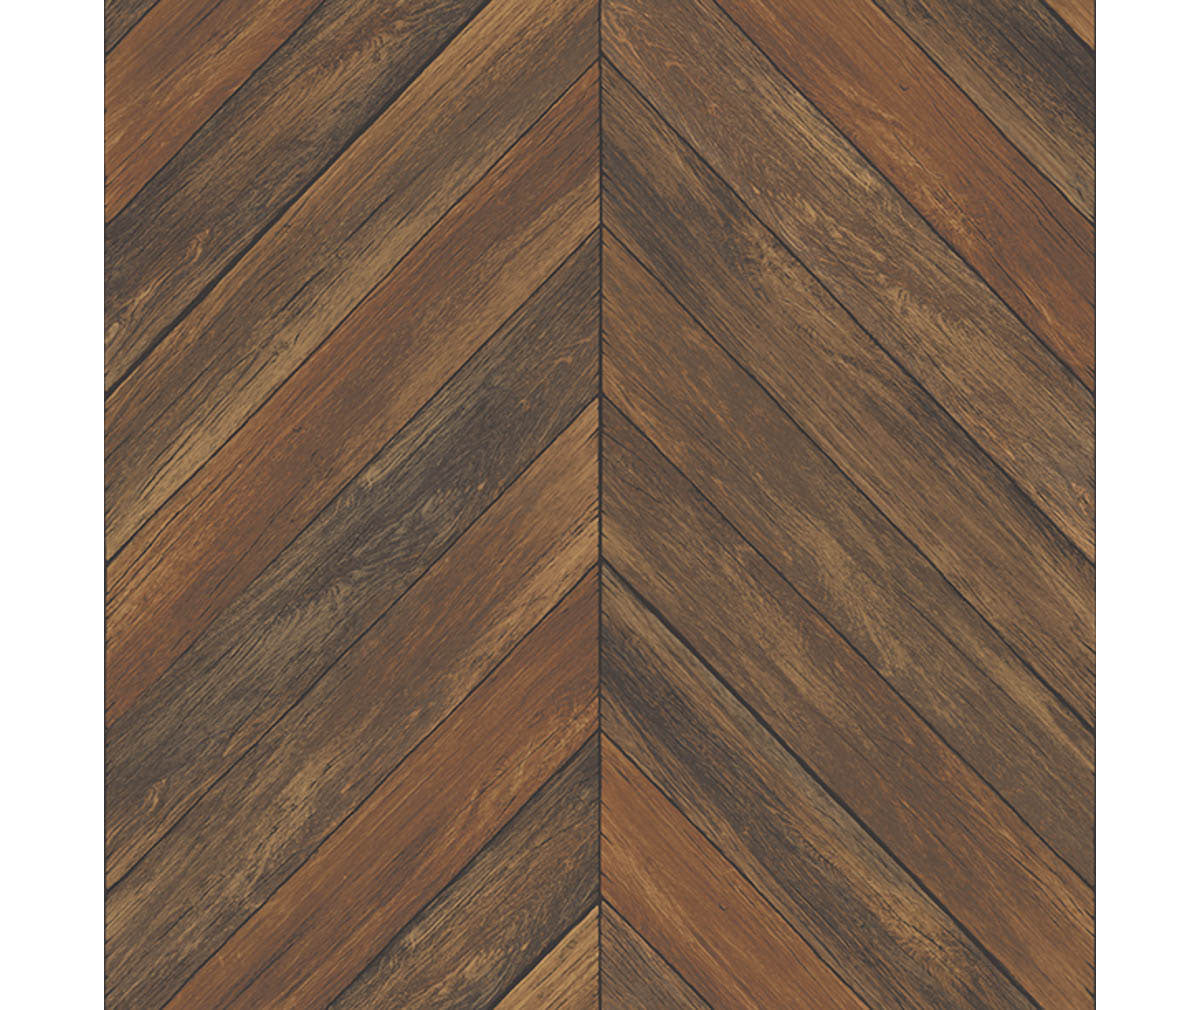 Parisian Chestnut Parquet Wallpaper available at Barrydowne Paint